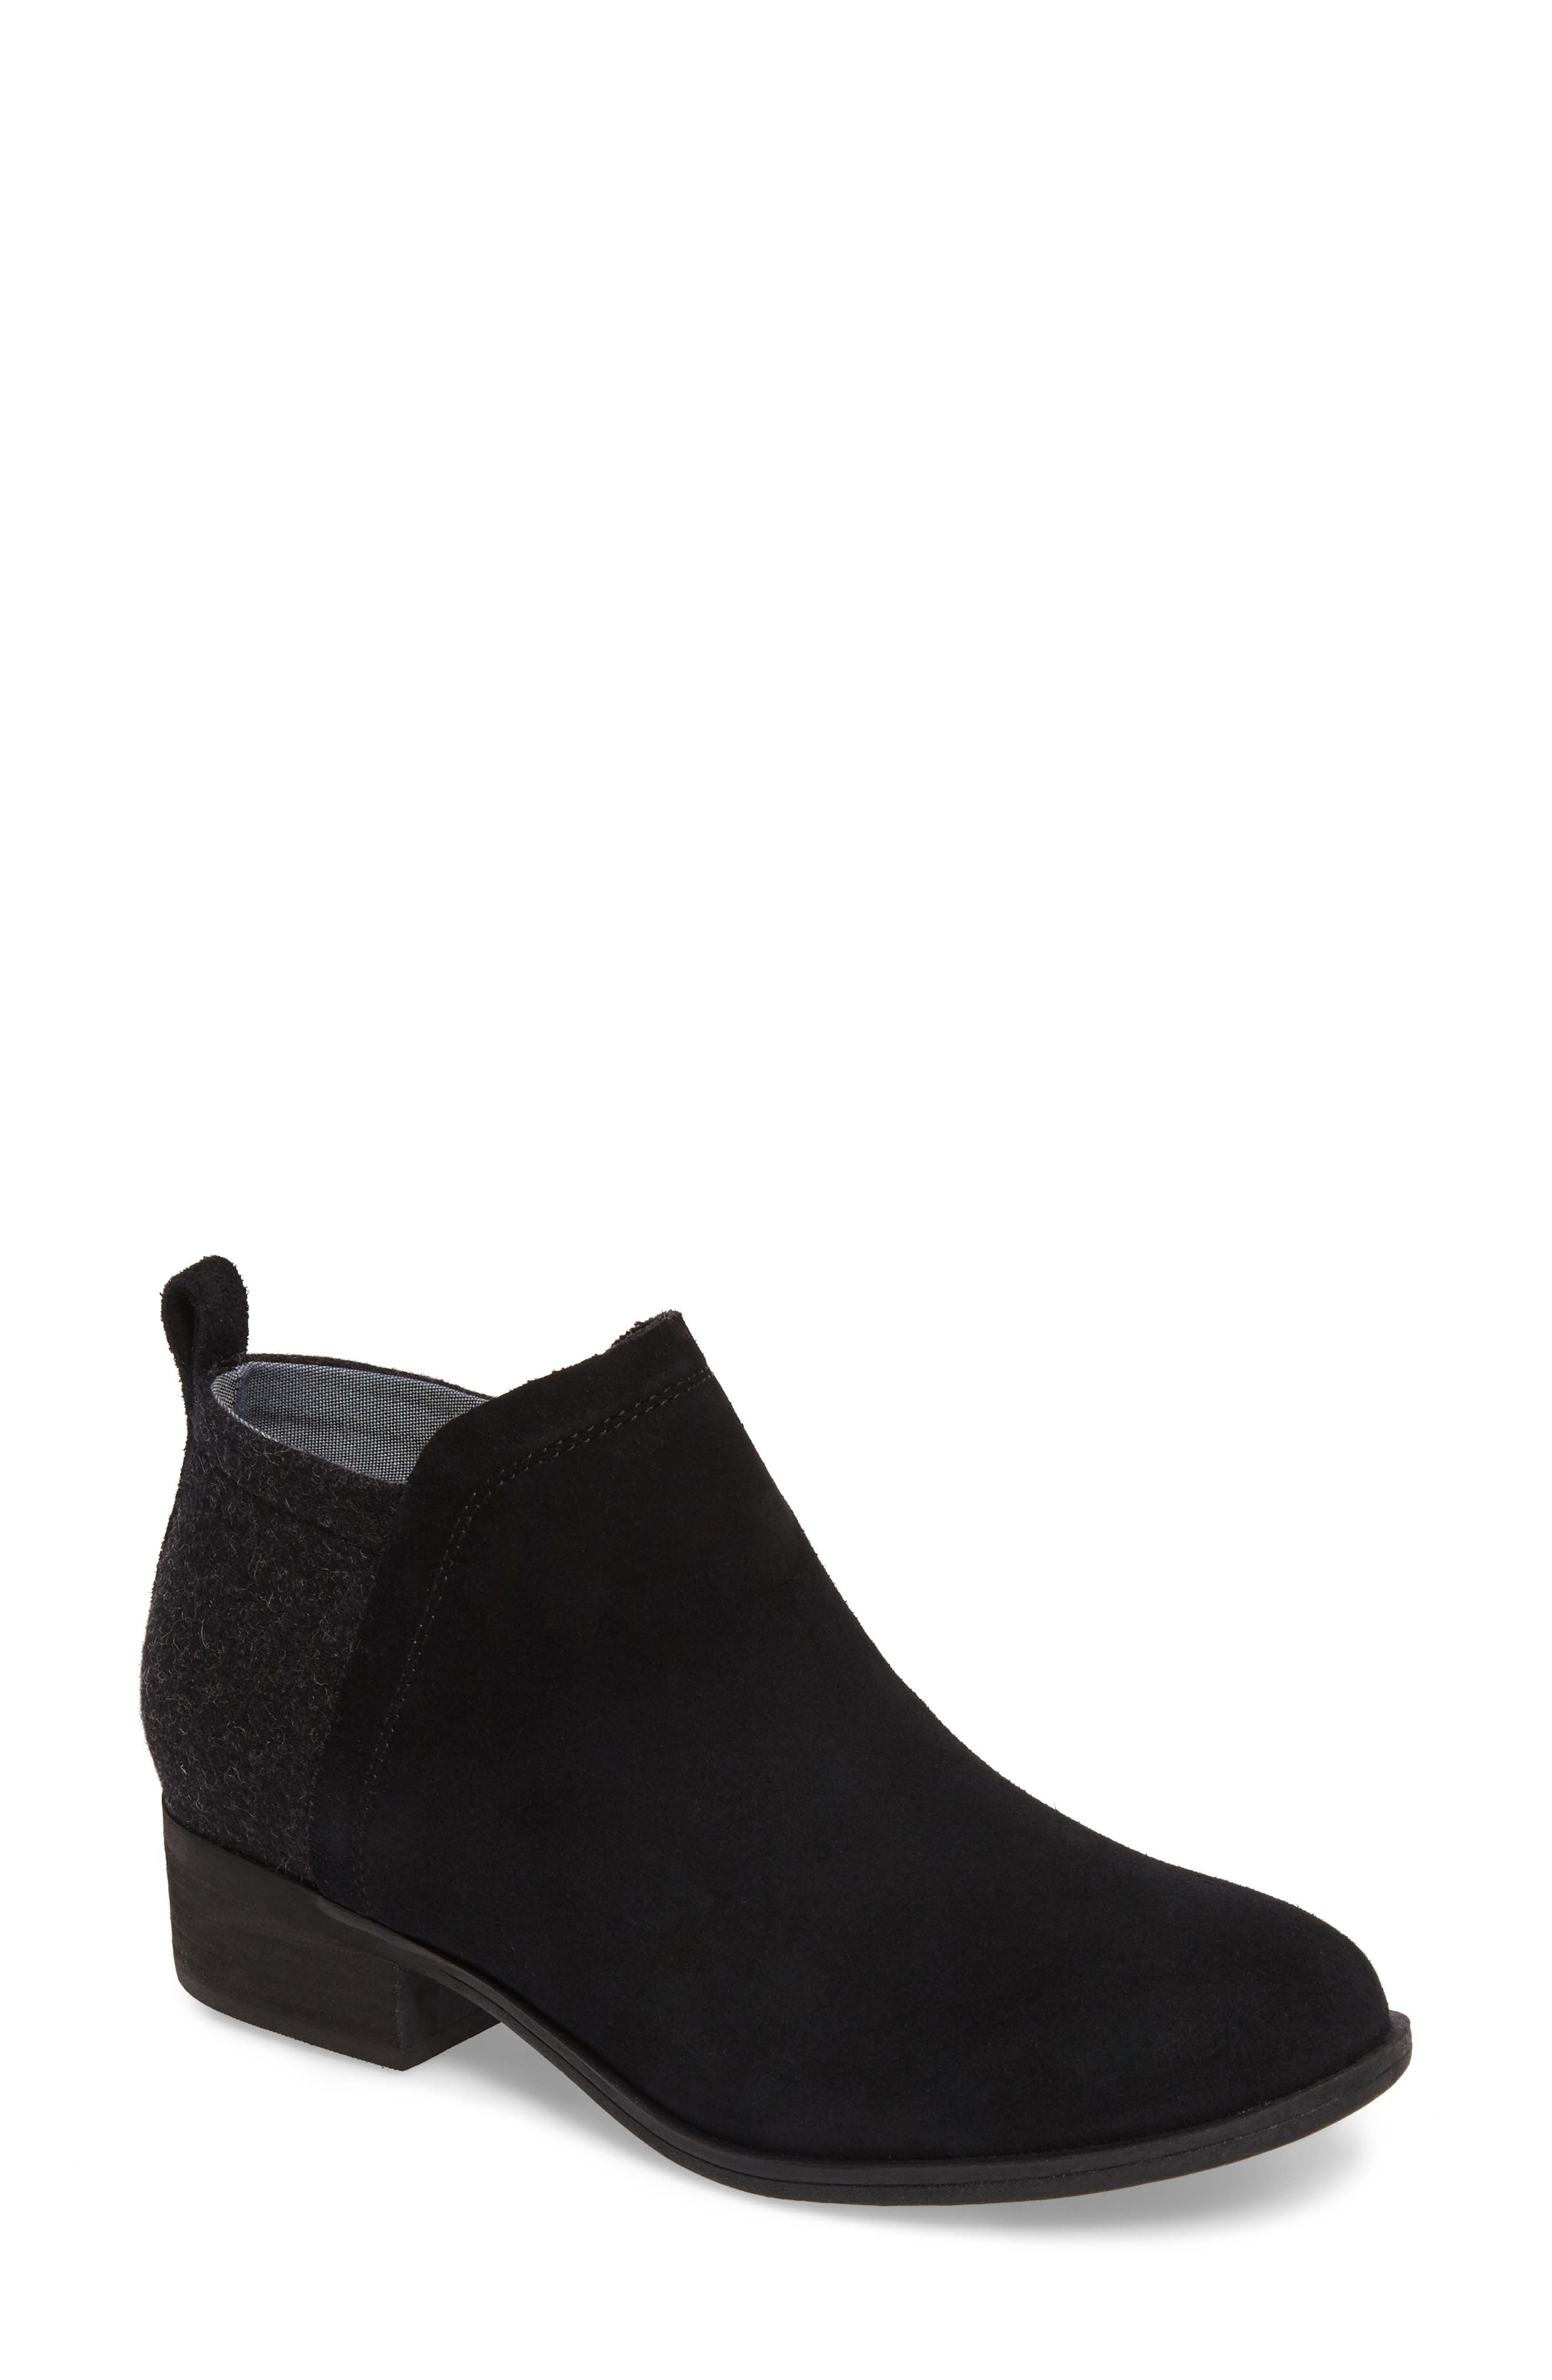 Deia Zip Bootie,                         Main,                         color,